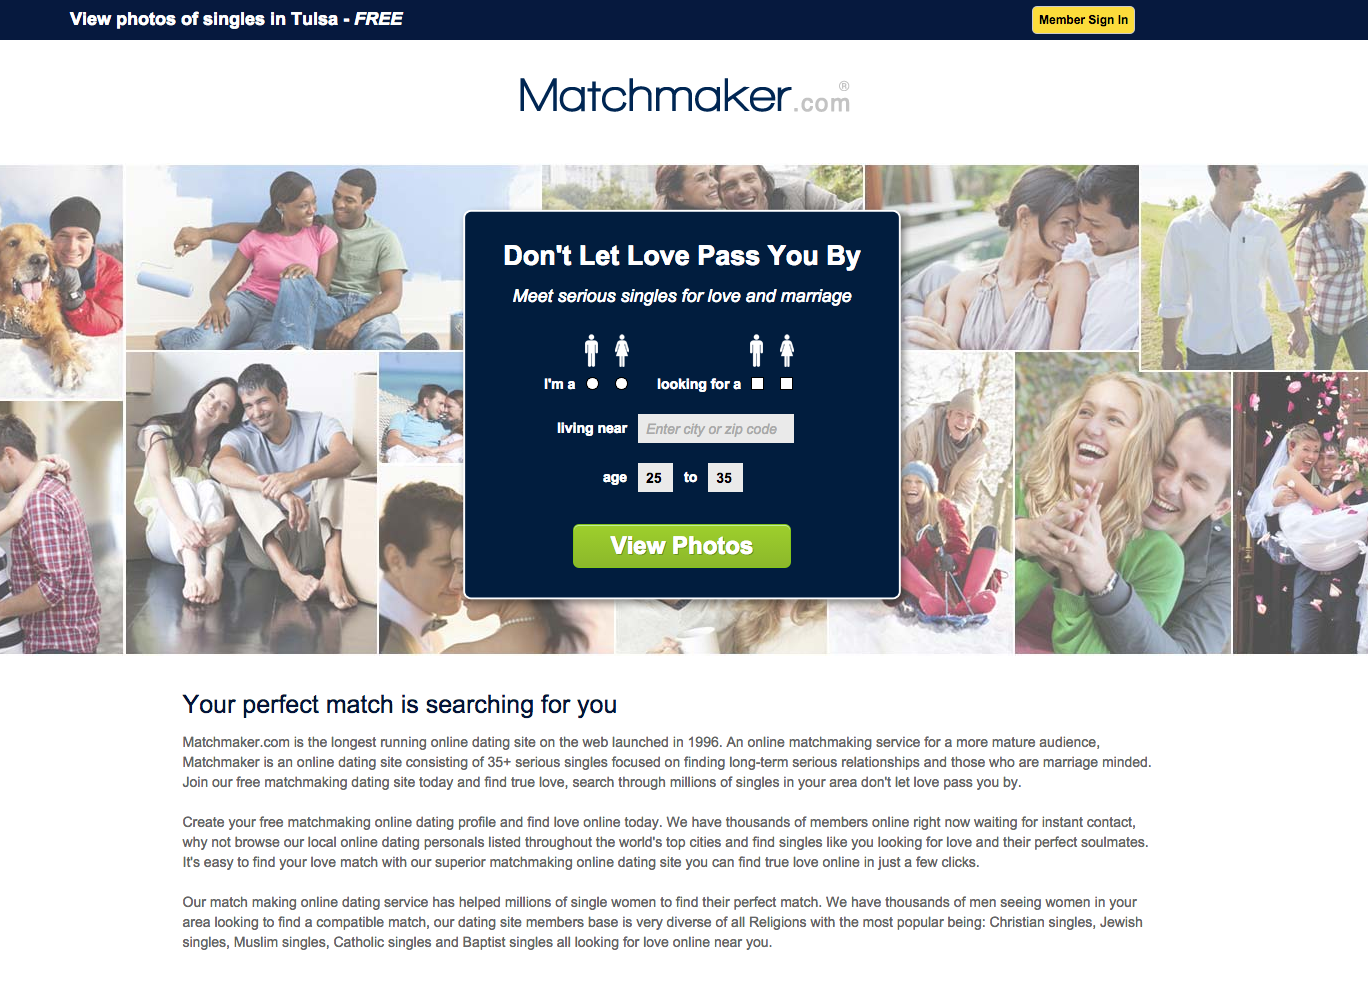 matchmakers dating website